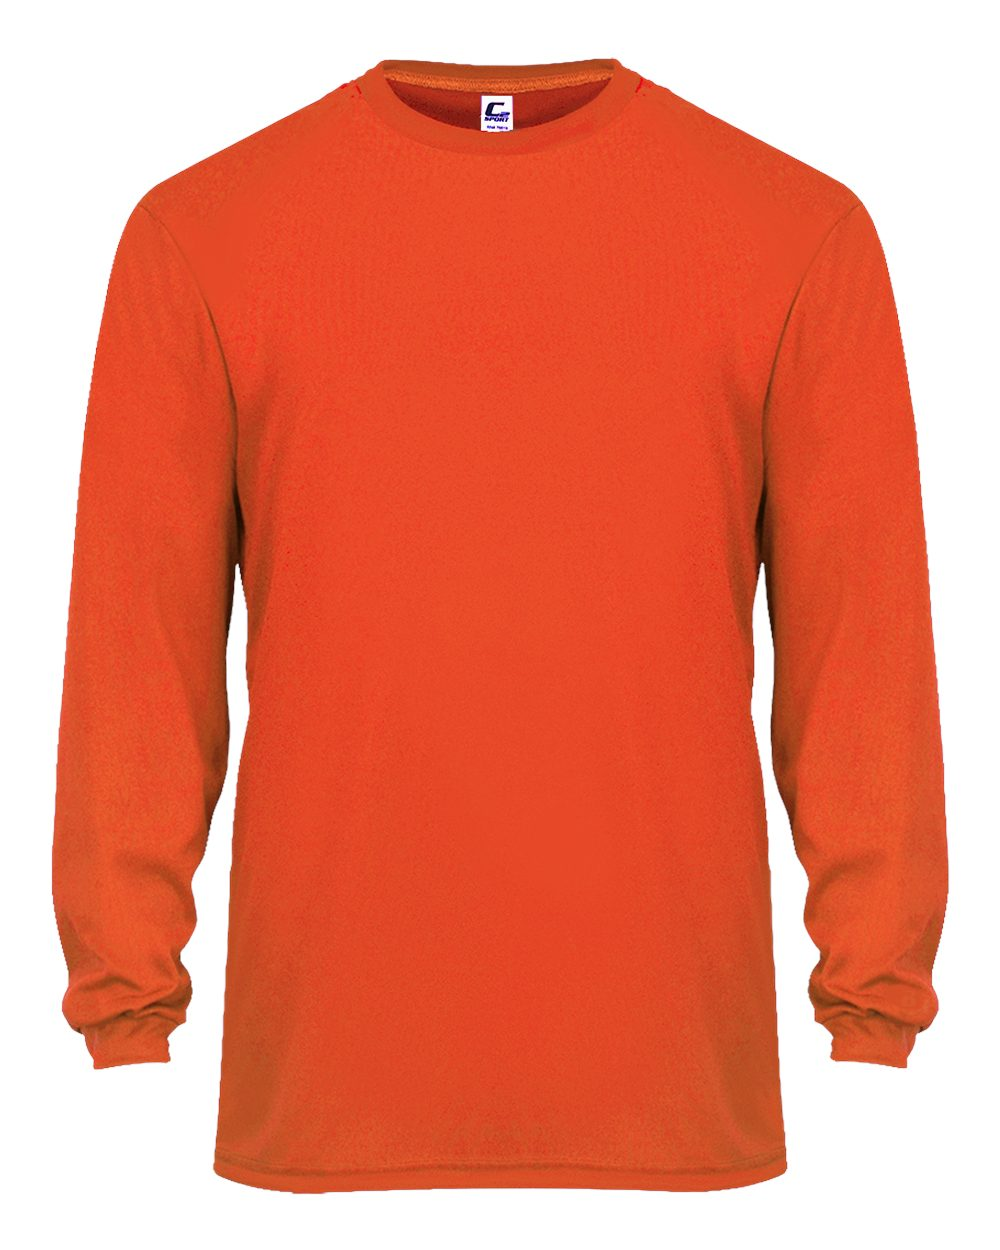 Badger C2 Performance Tee Long Sleeve